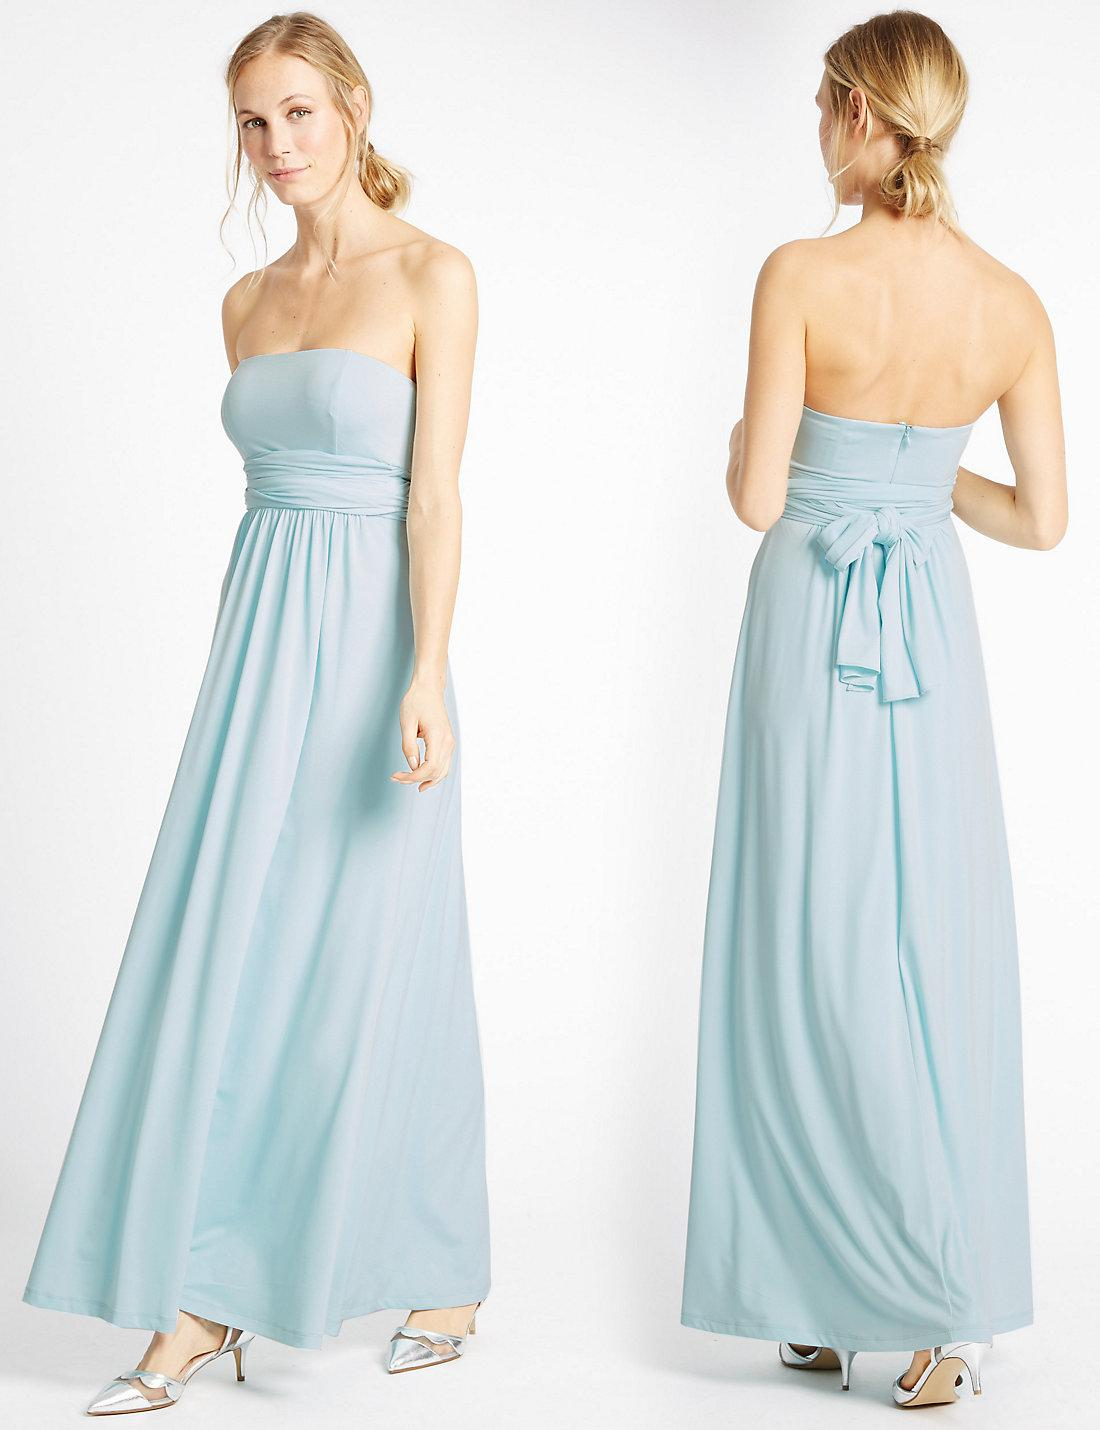 Fantastic Marks And Spencer Party Dresses Gallery - Wedding Ideas ...